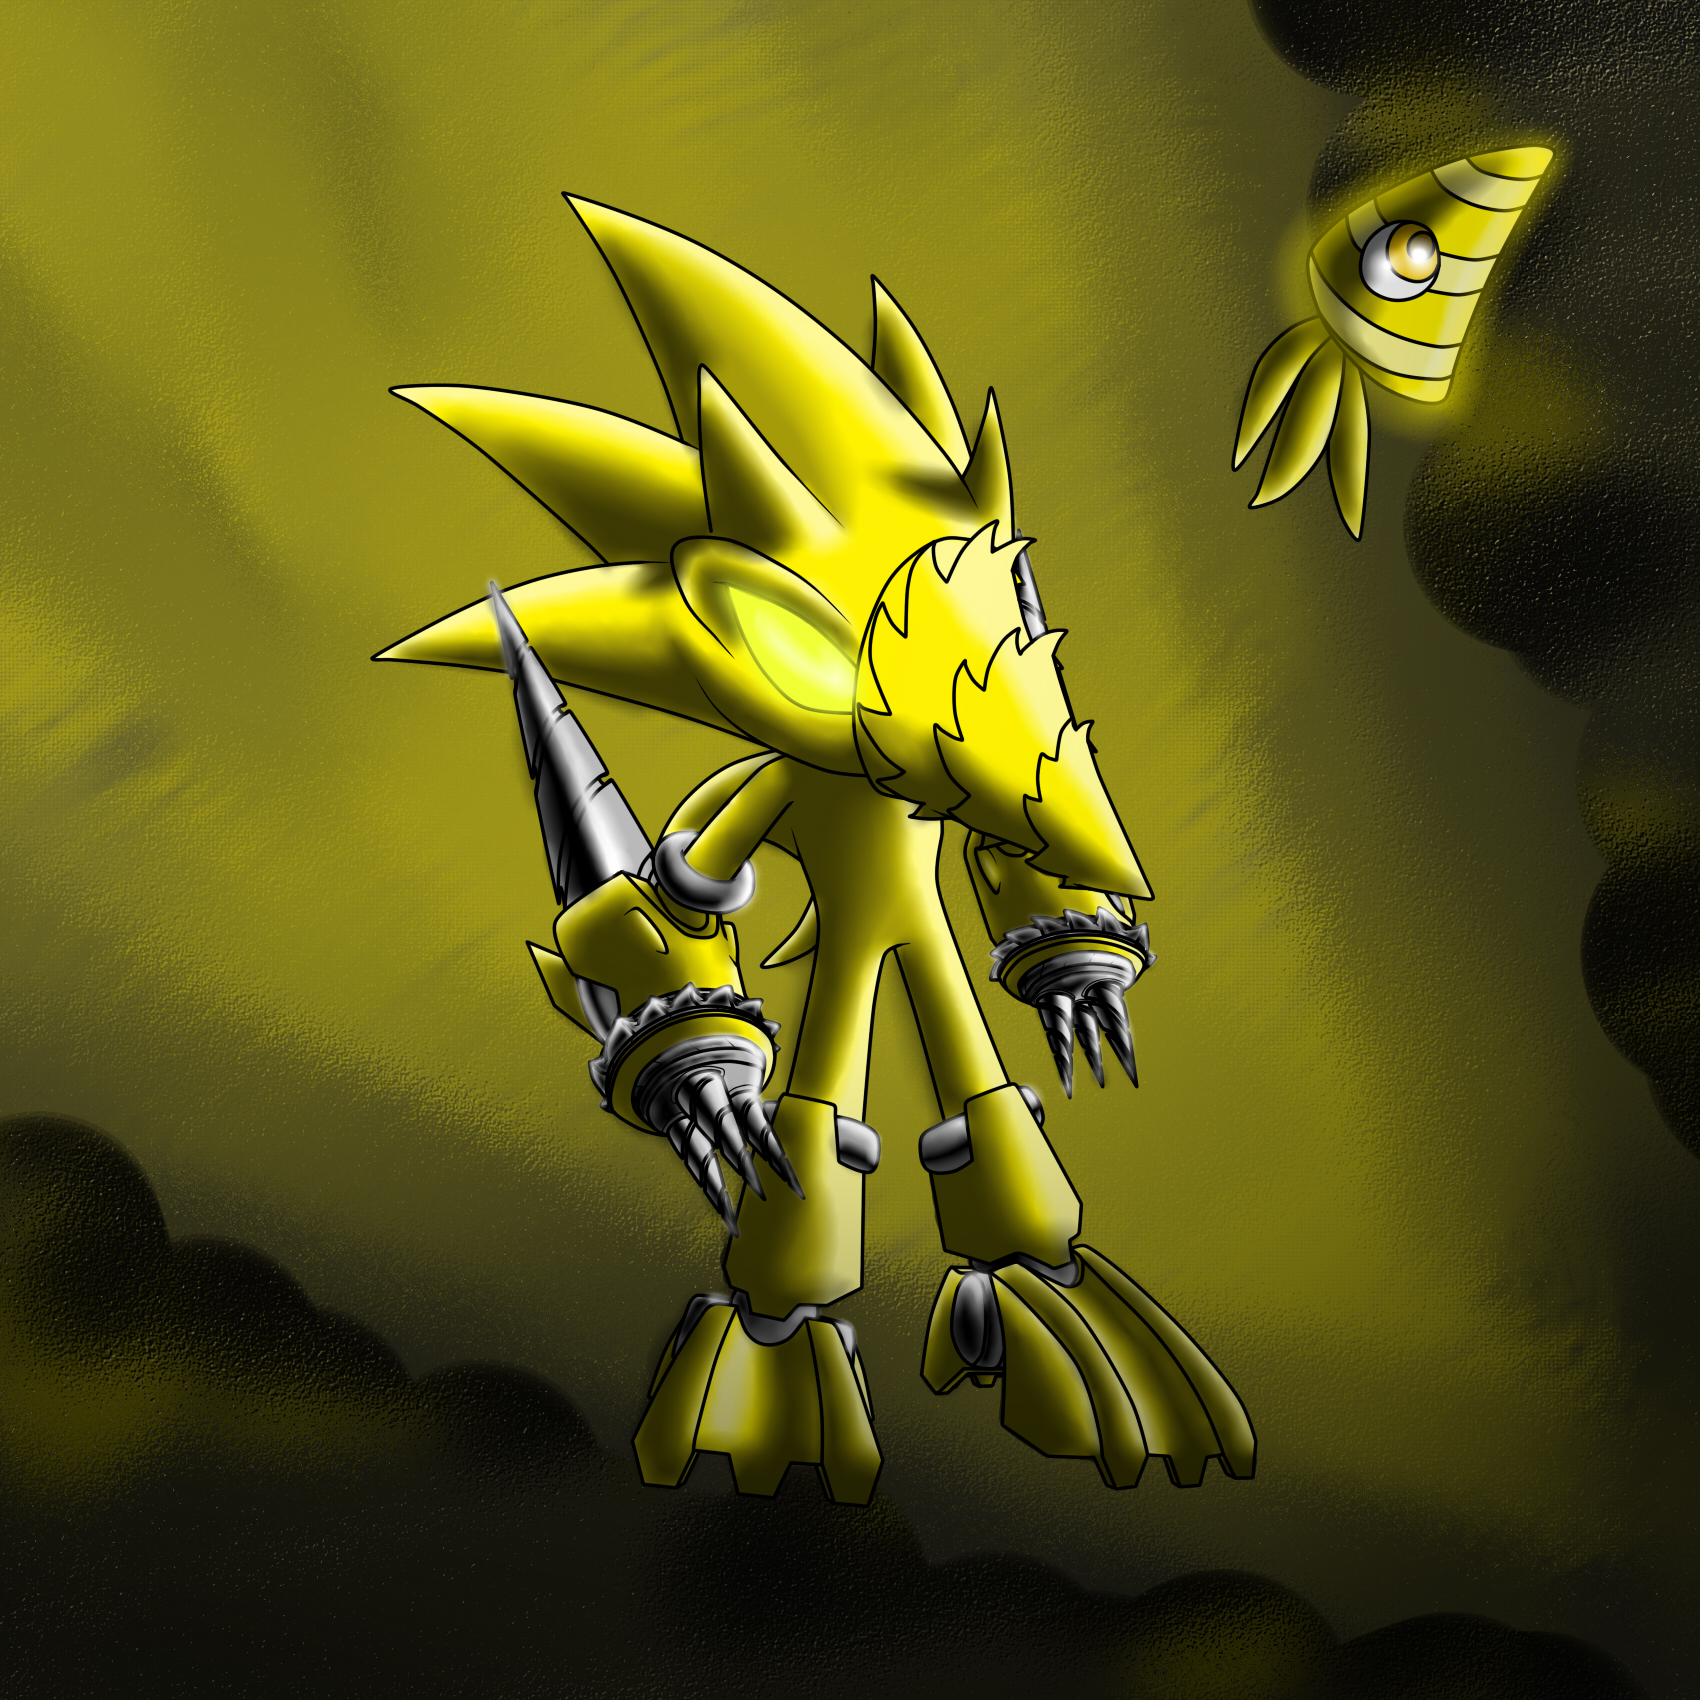 Sonic Forms: Drill Sonic By Sweecrue On DeviantArt